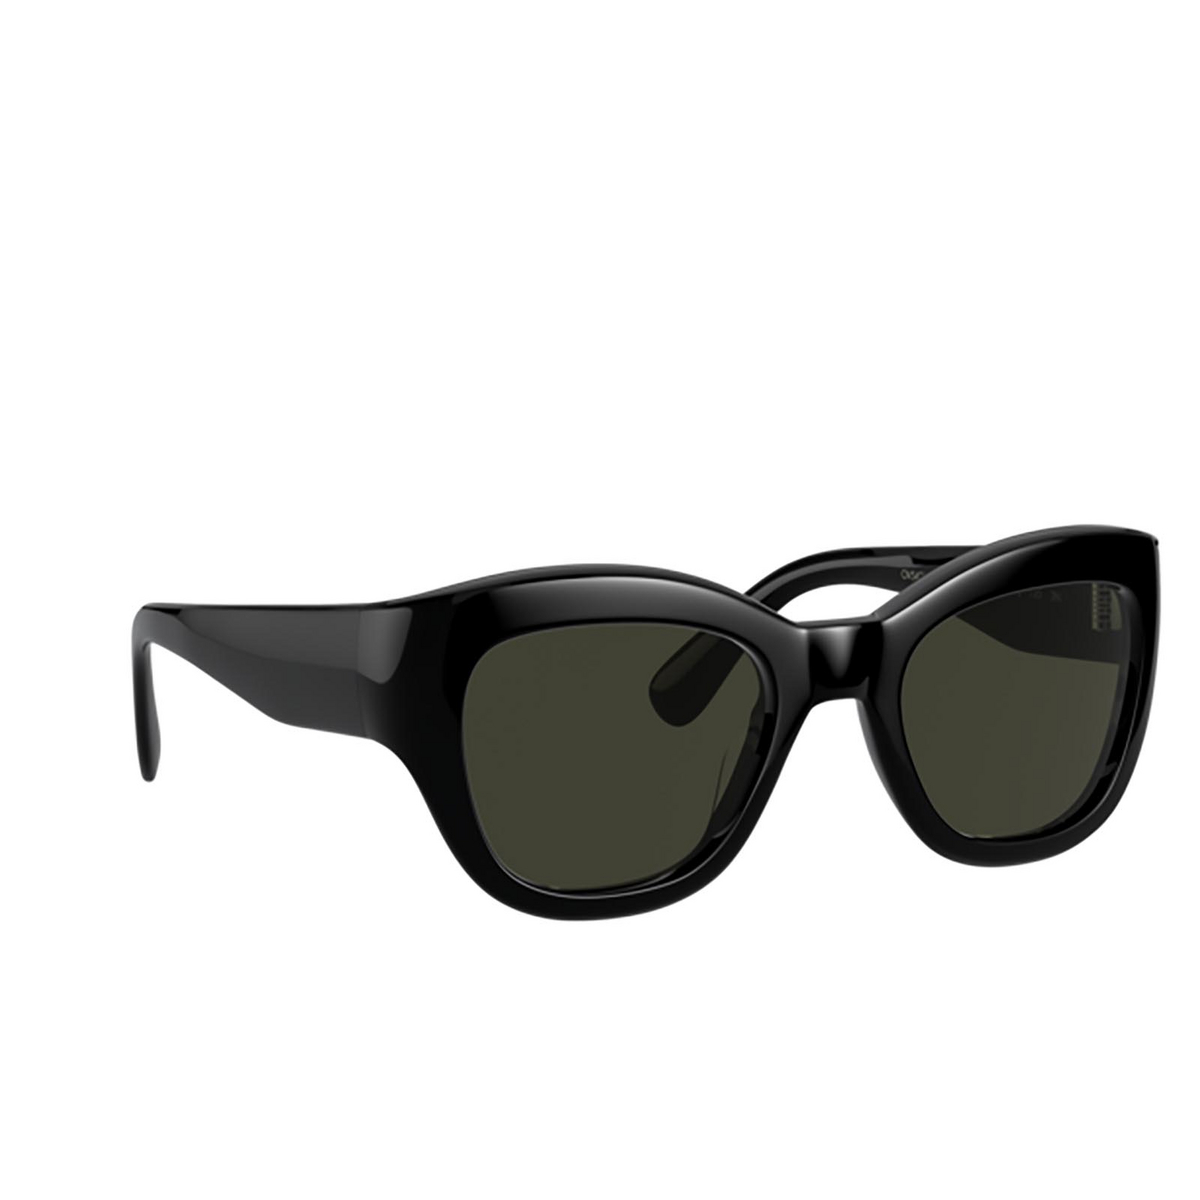 Oliver Peoples® Butterfly Sunglasses: Lalit OV5430SU color Black 100582 - three-quarters view.